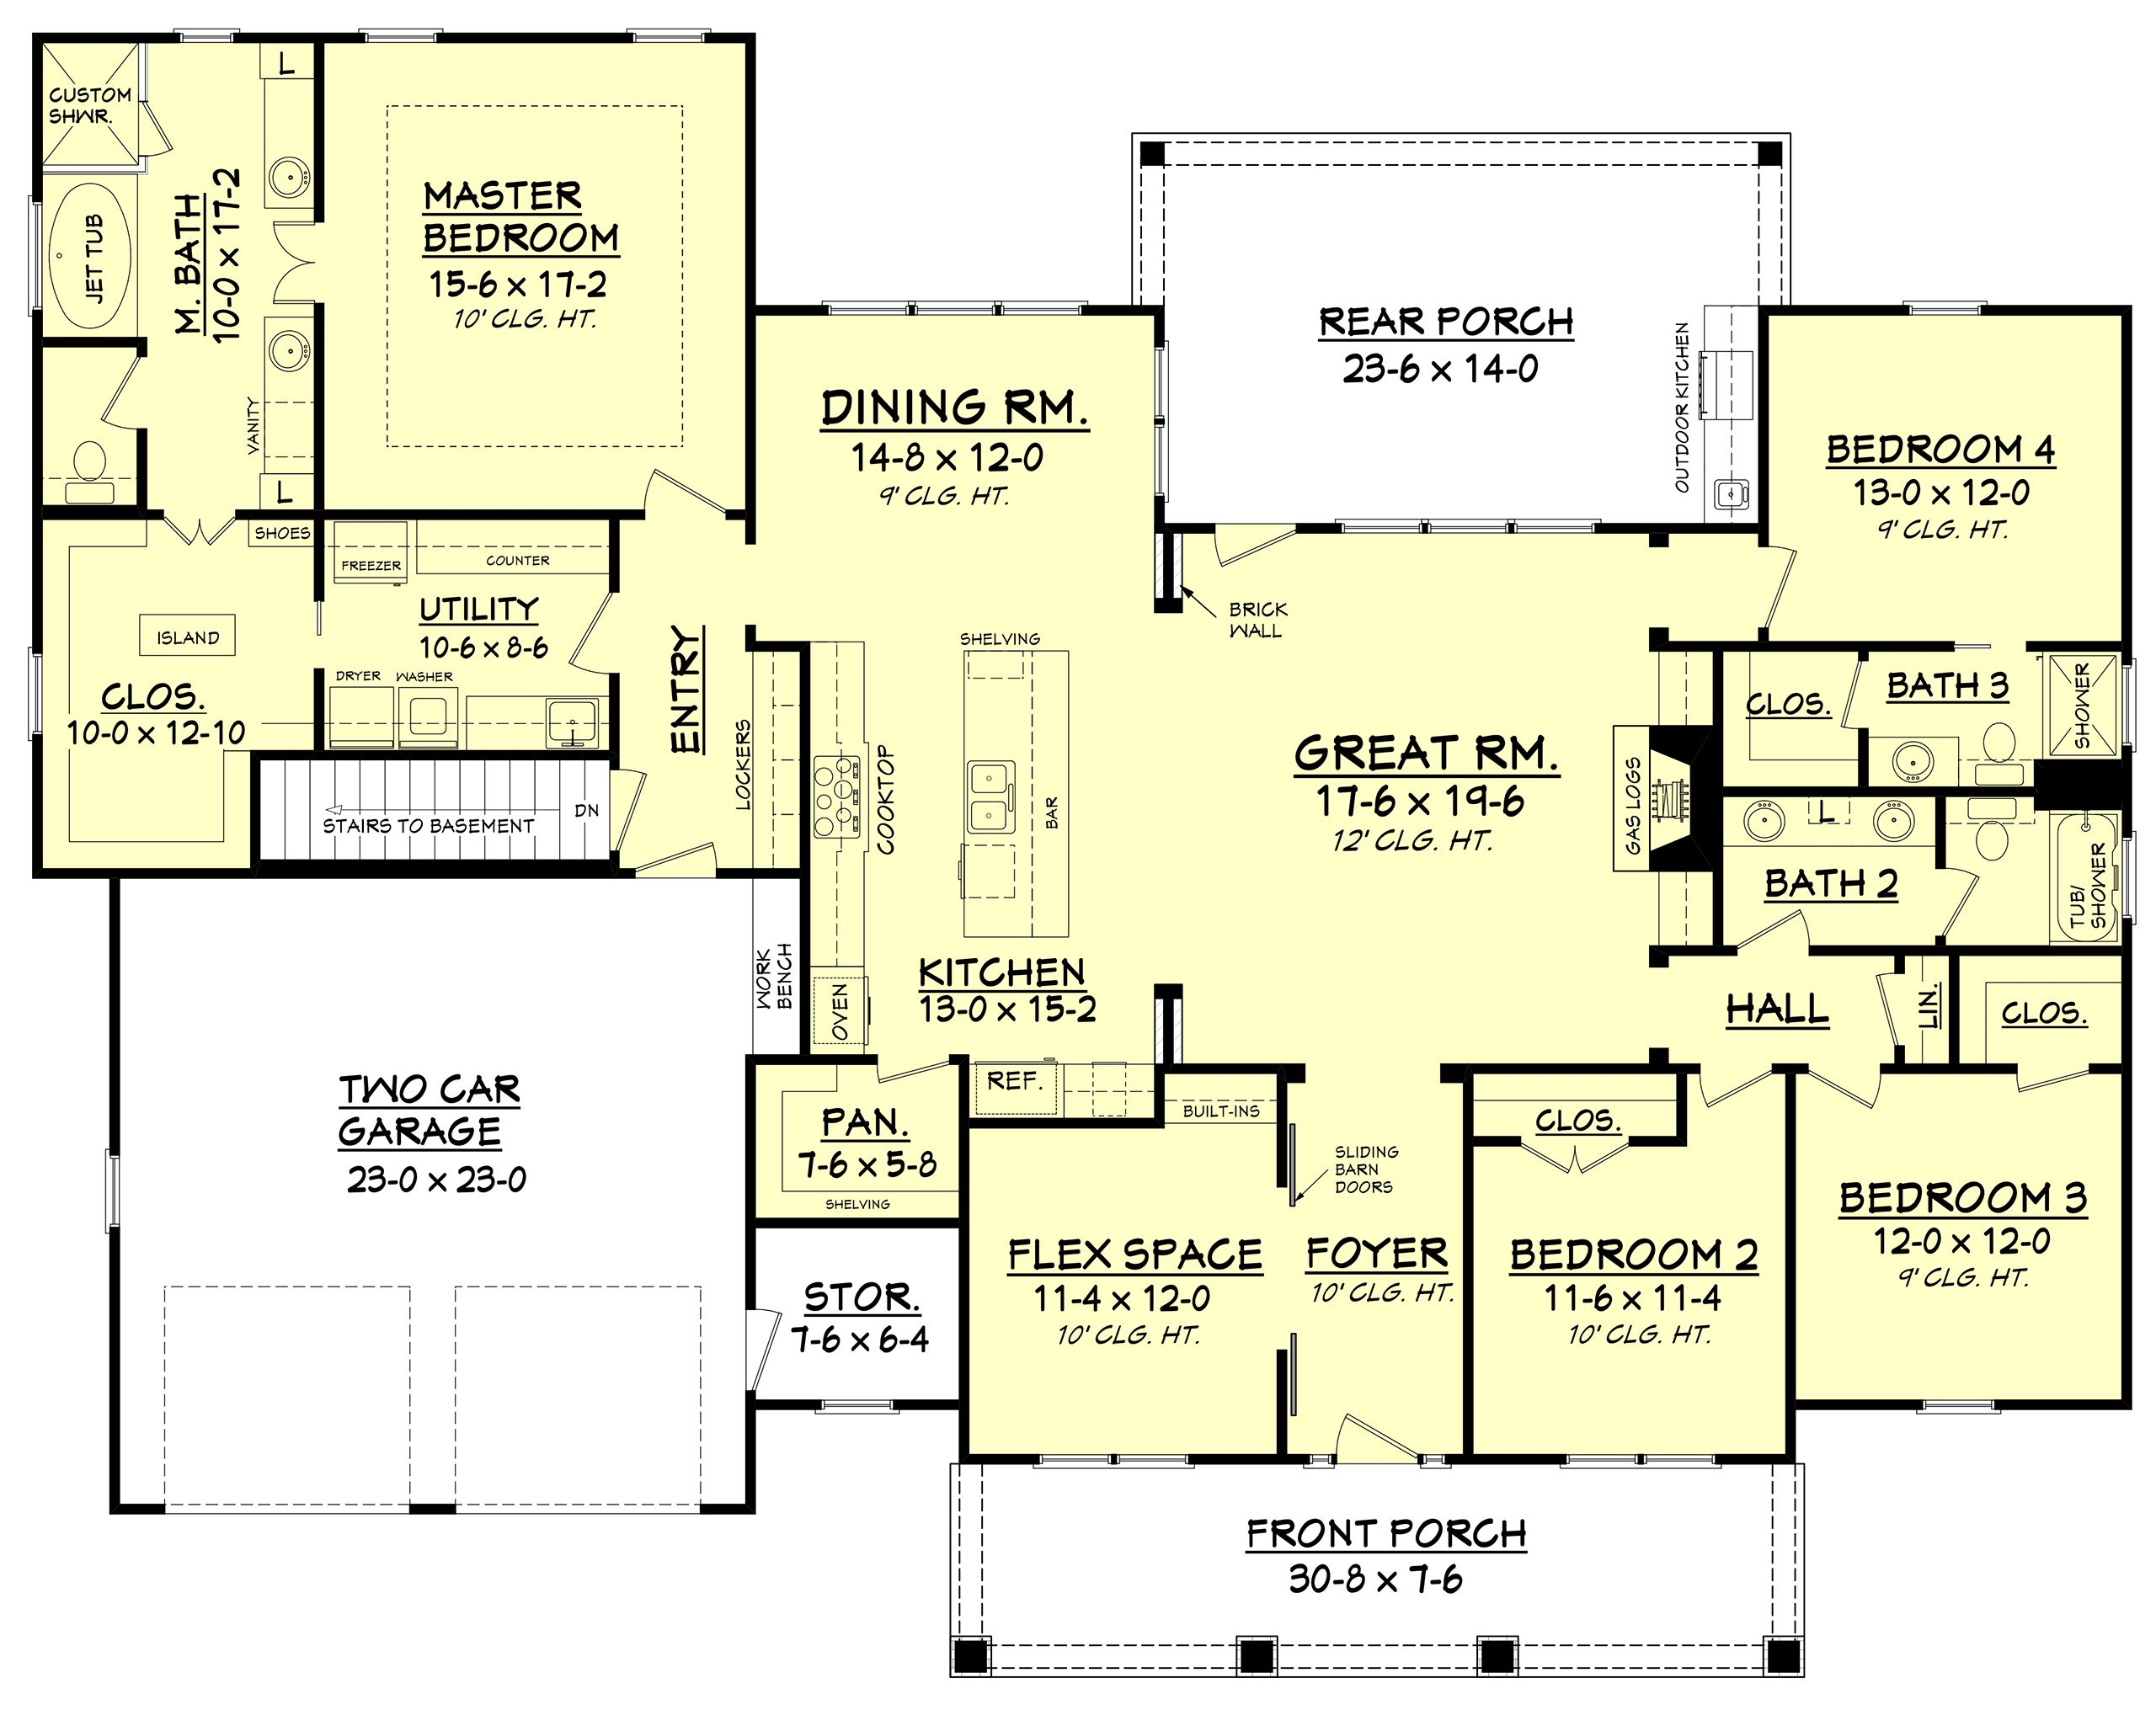 Craftsman Style House Plan   4 Beds 3 Baths 2639 Sq/Ft Plan Floor Plan   I  Would Make Flex Space A DR And BR 2 A LR And Use DR In The Great Room ...